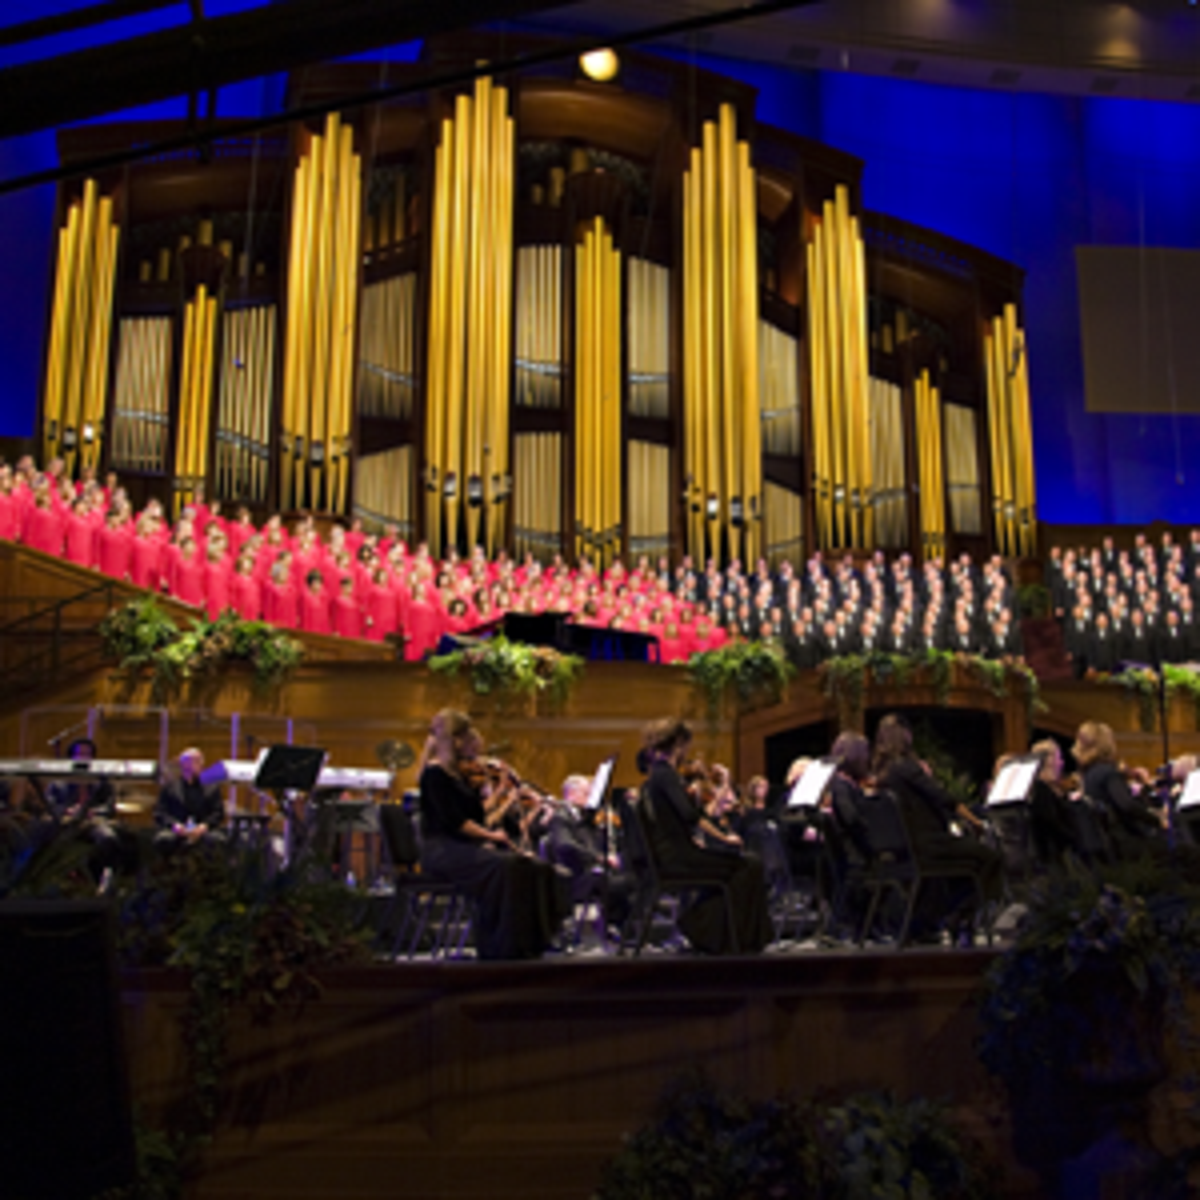 Mormon tabernacle choir of the Church of Jesus Christ of Latter-day Saints